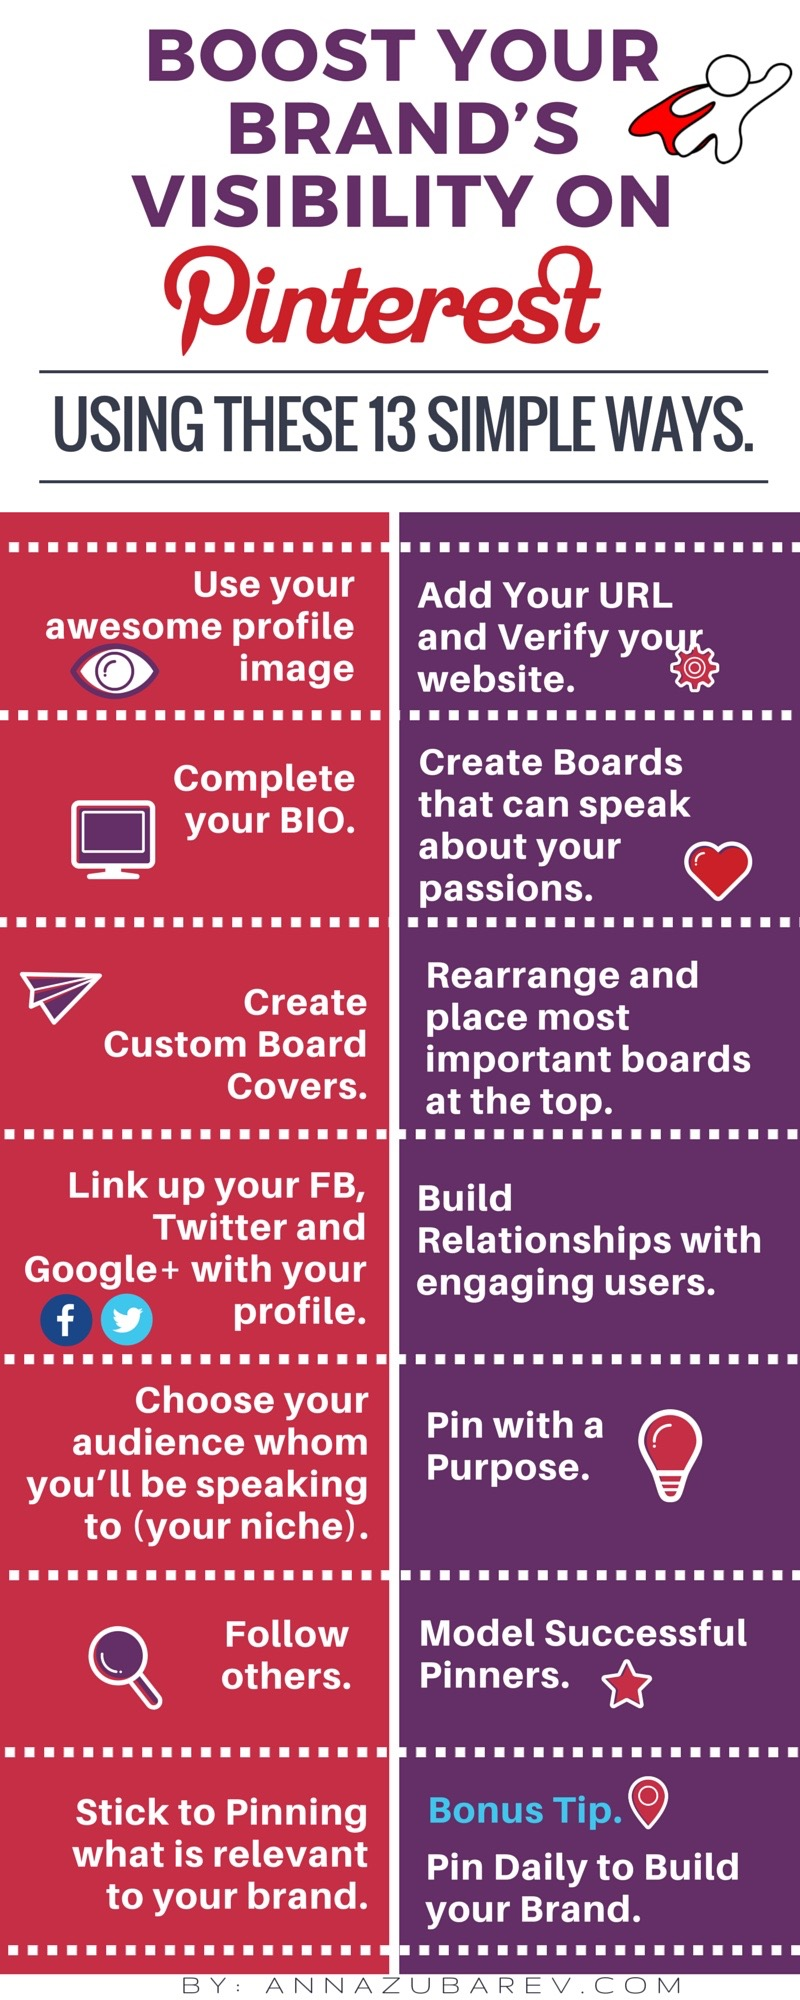 Boost Your Brand's Visibility on Pinterest Infographic. (2)